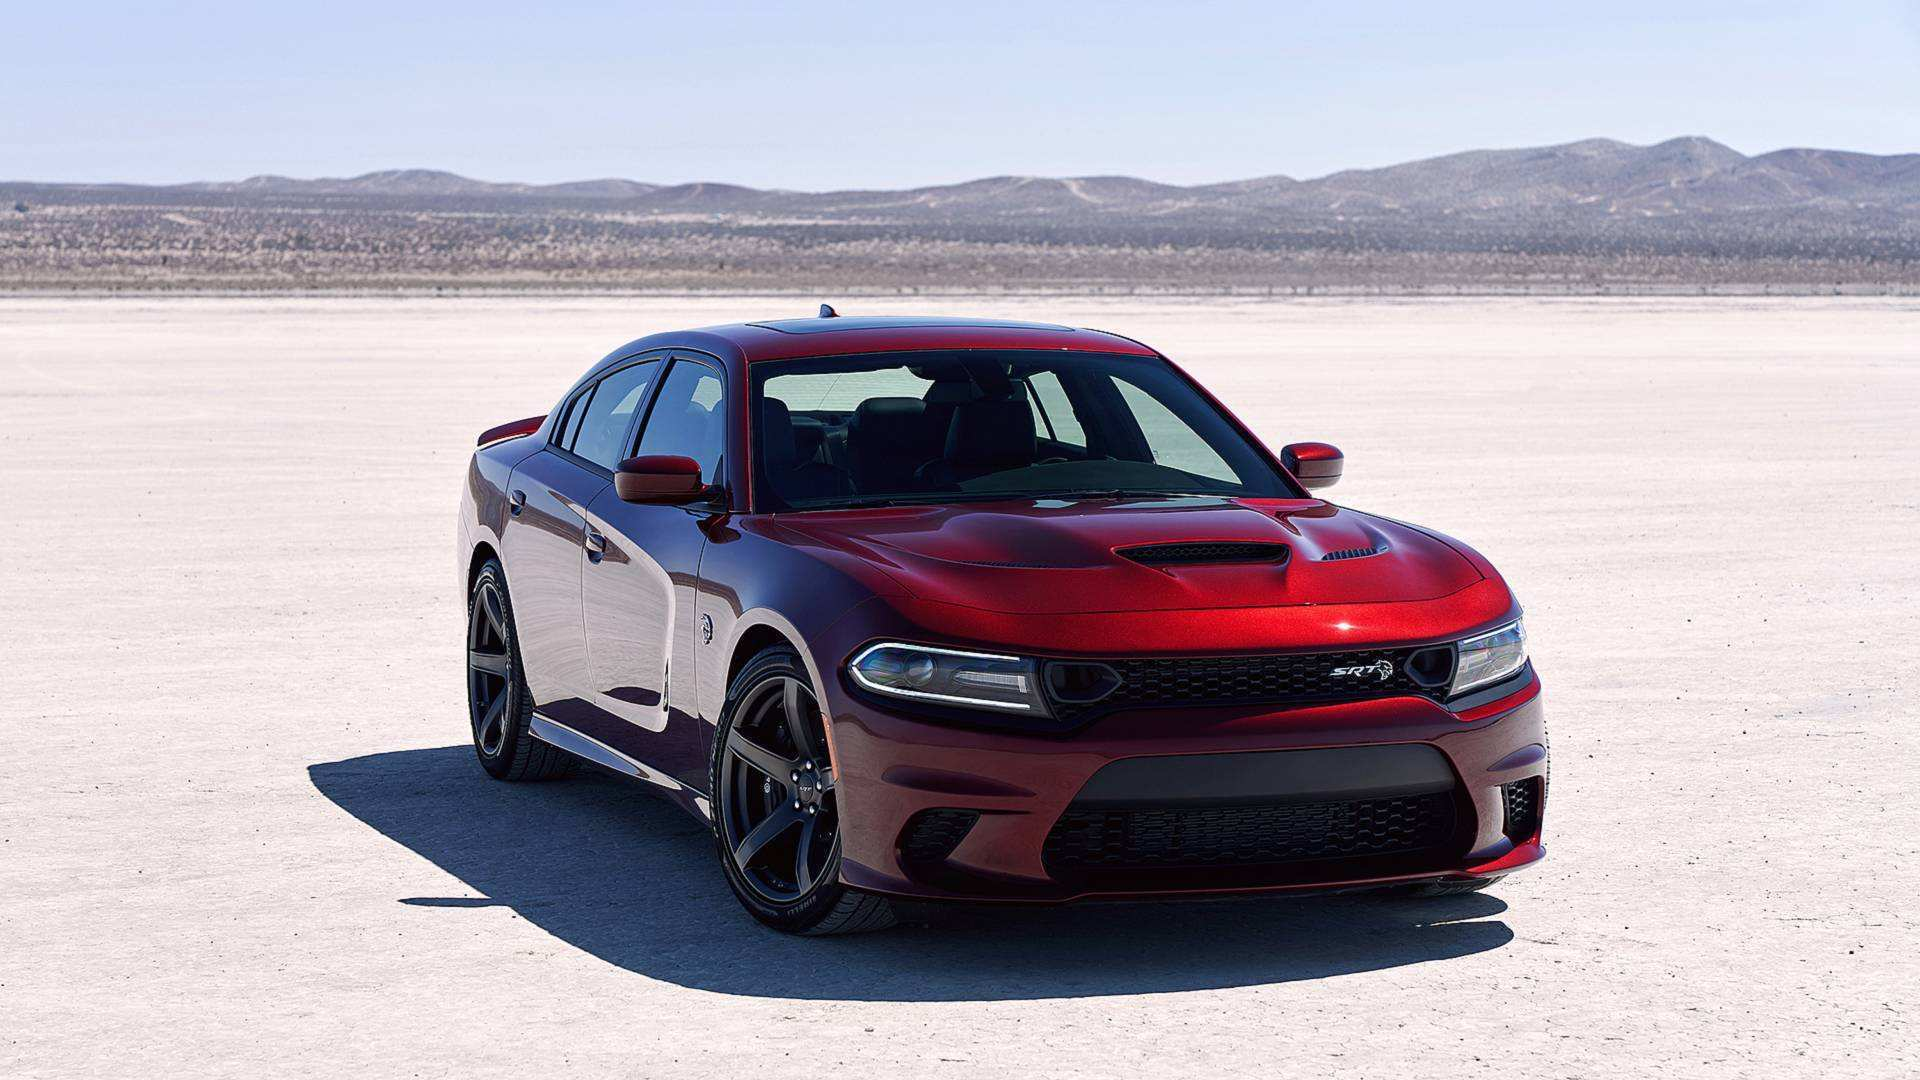 24 New 2020 Dodge Charger Srt8 Hellcat Performance by 2020 Dodge Charger Srt8 Hellcat